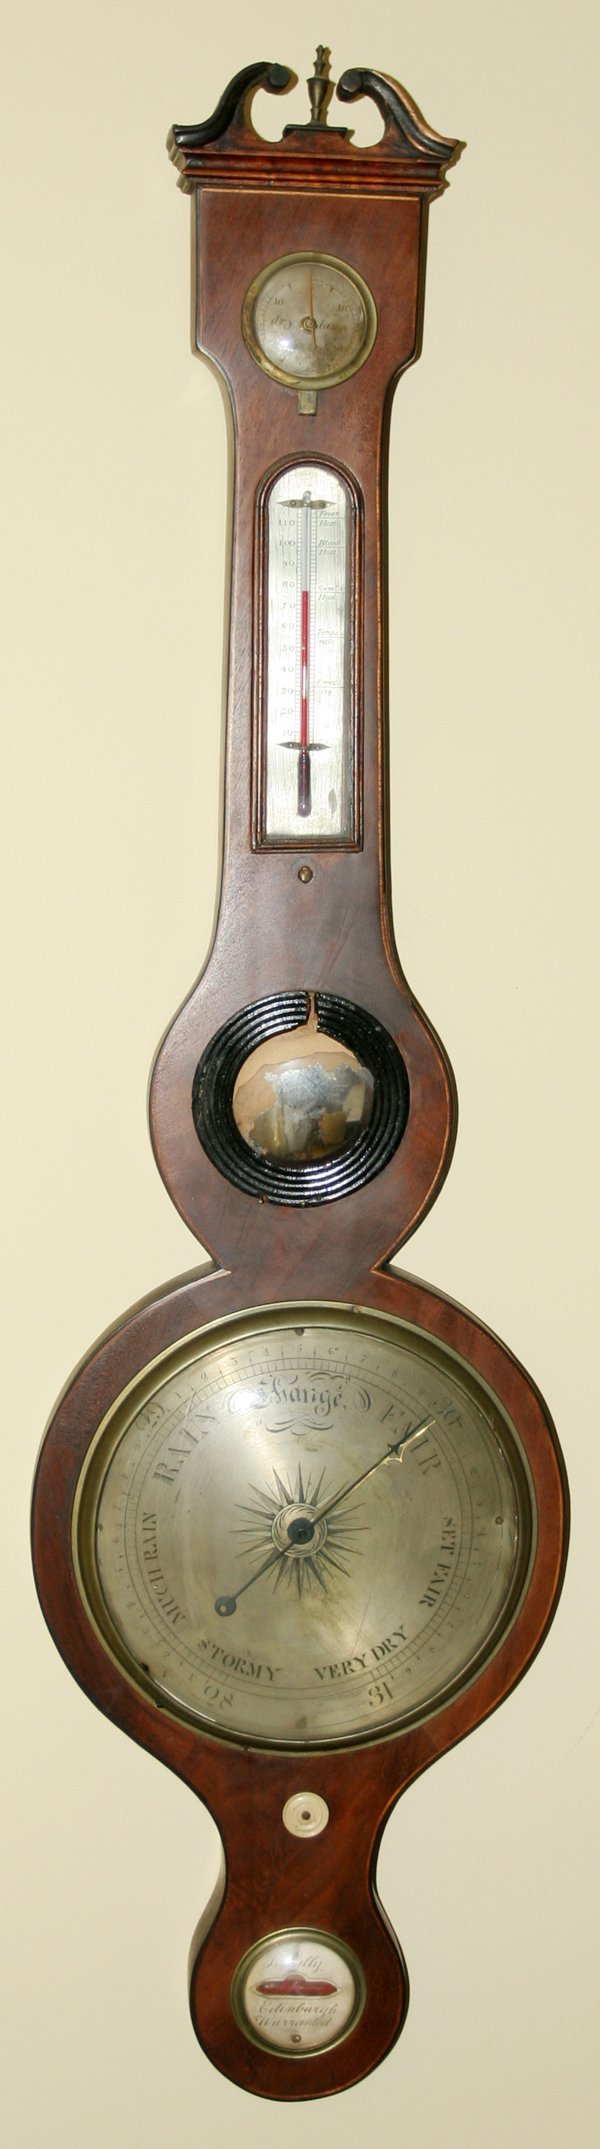 091007: SCOTTISH MAHOGANY BAROMETER L. TILLY 18TH C.